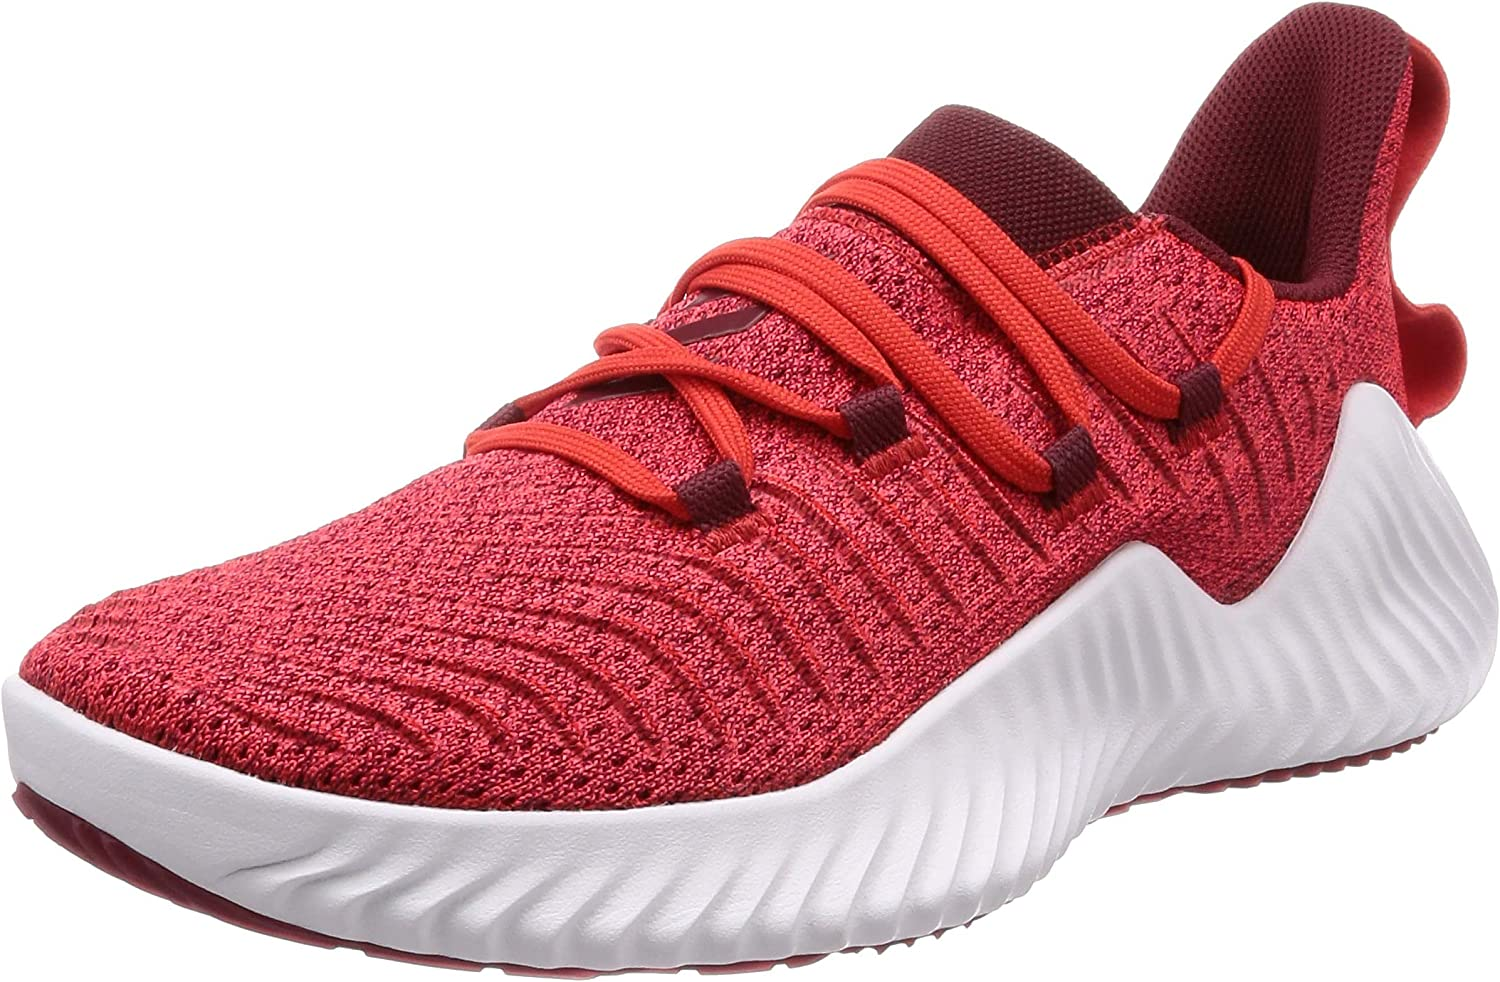 Adidas Men's Alphabounce Trainer M Fitness shoes